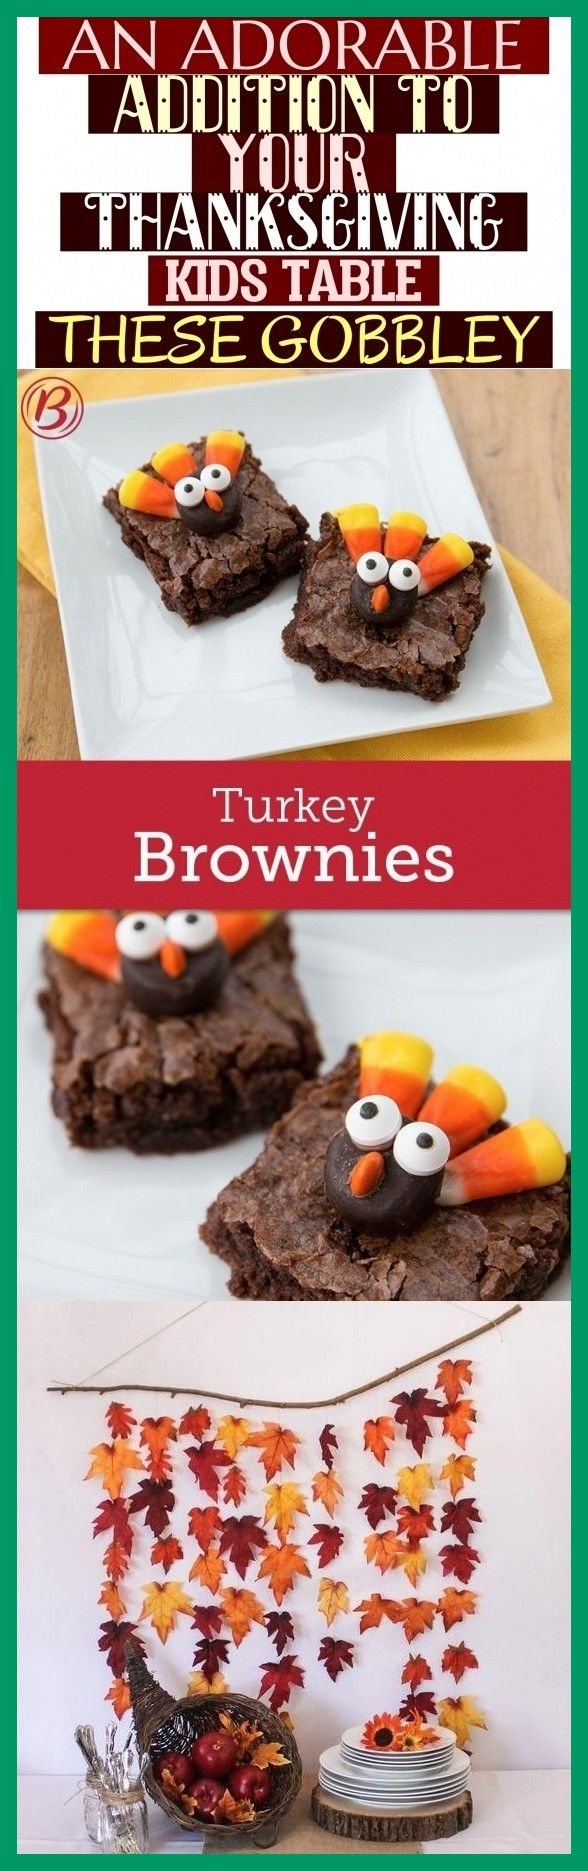 Photo of An Adorable Addition To Your Thanksgiving Kids' Table These …